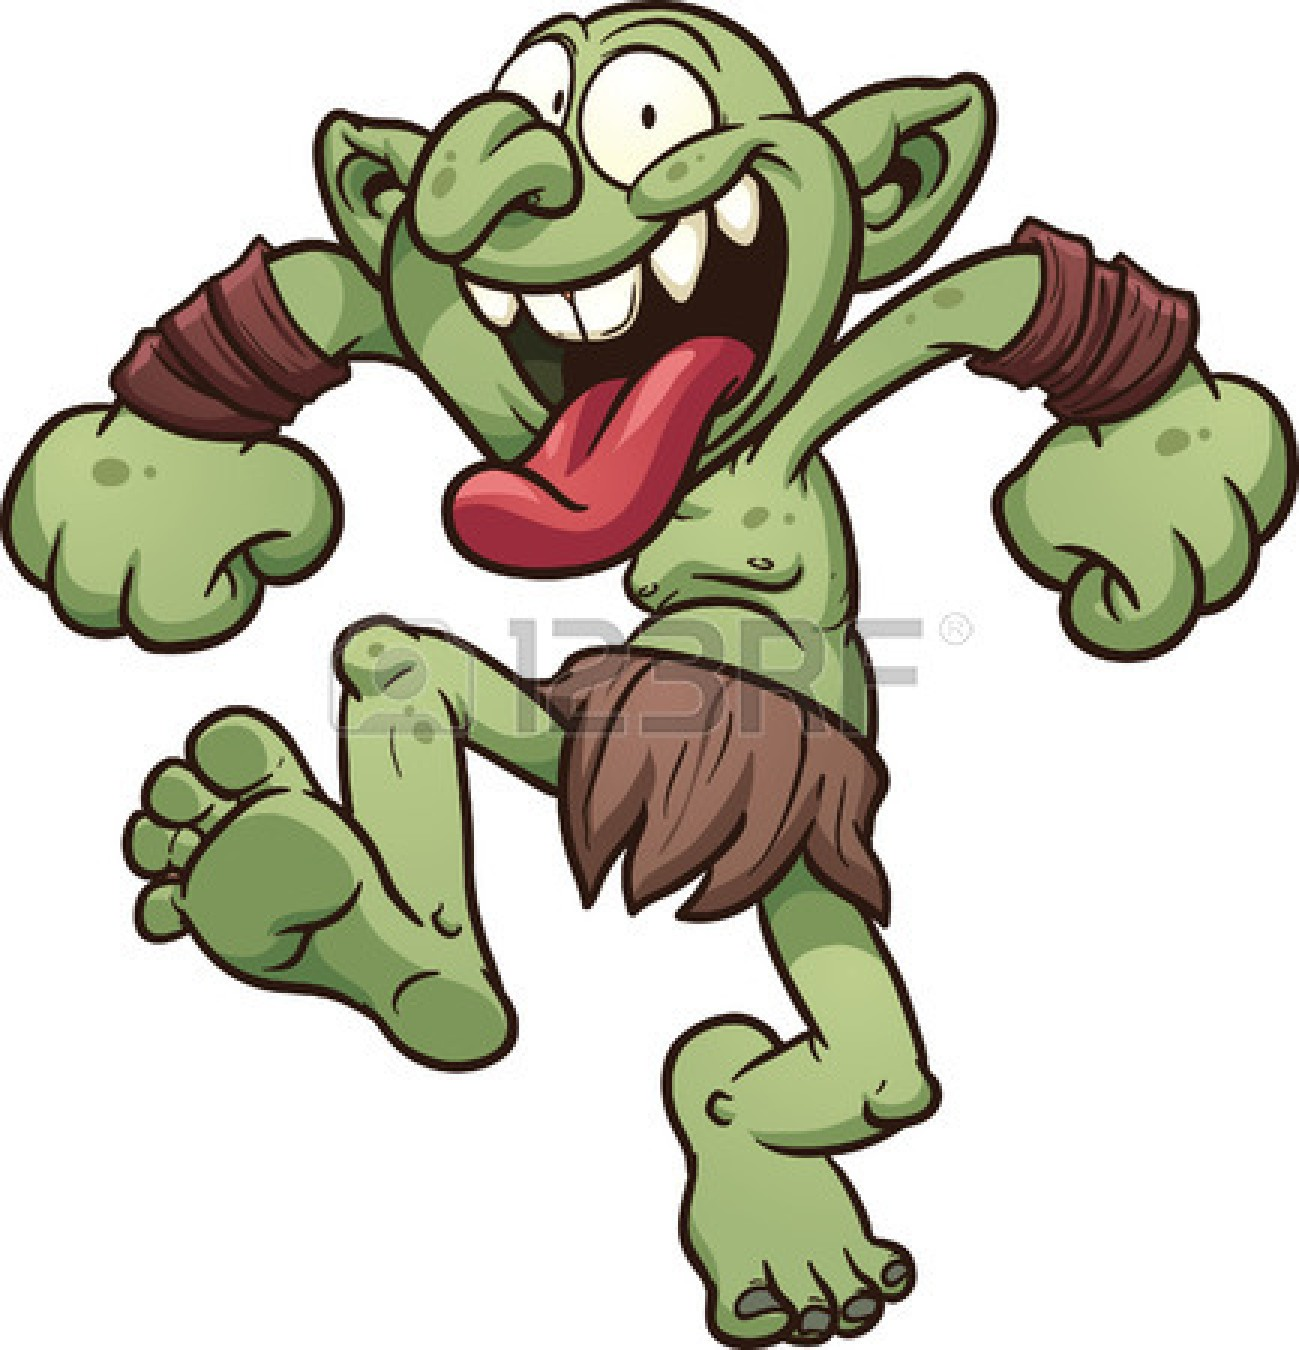 Troll clipart #17, Download drawings